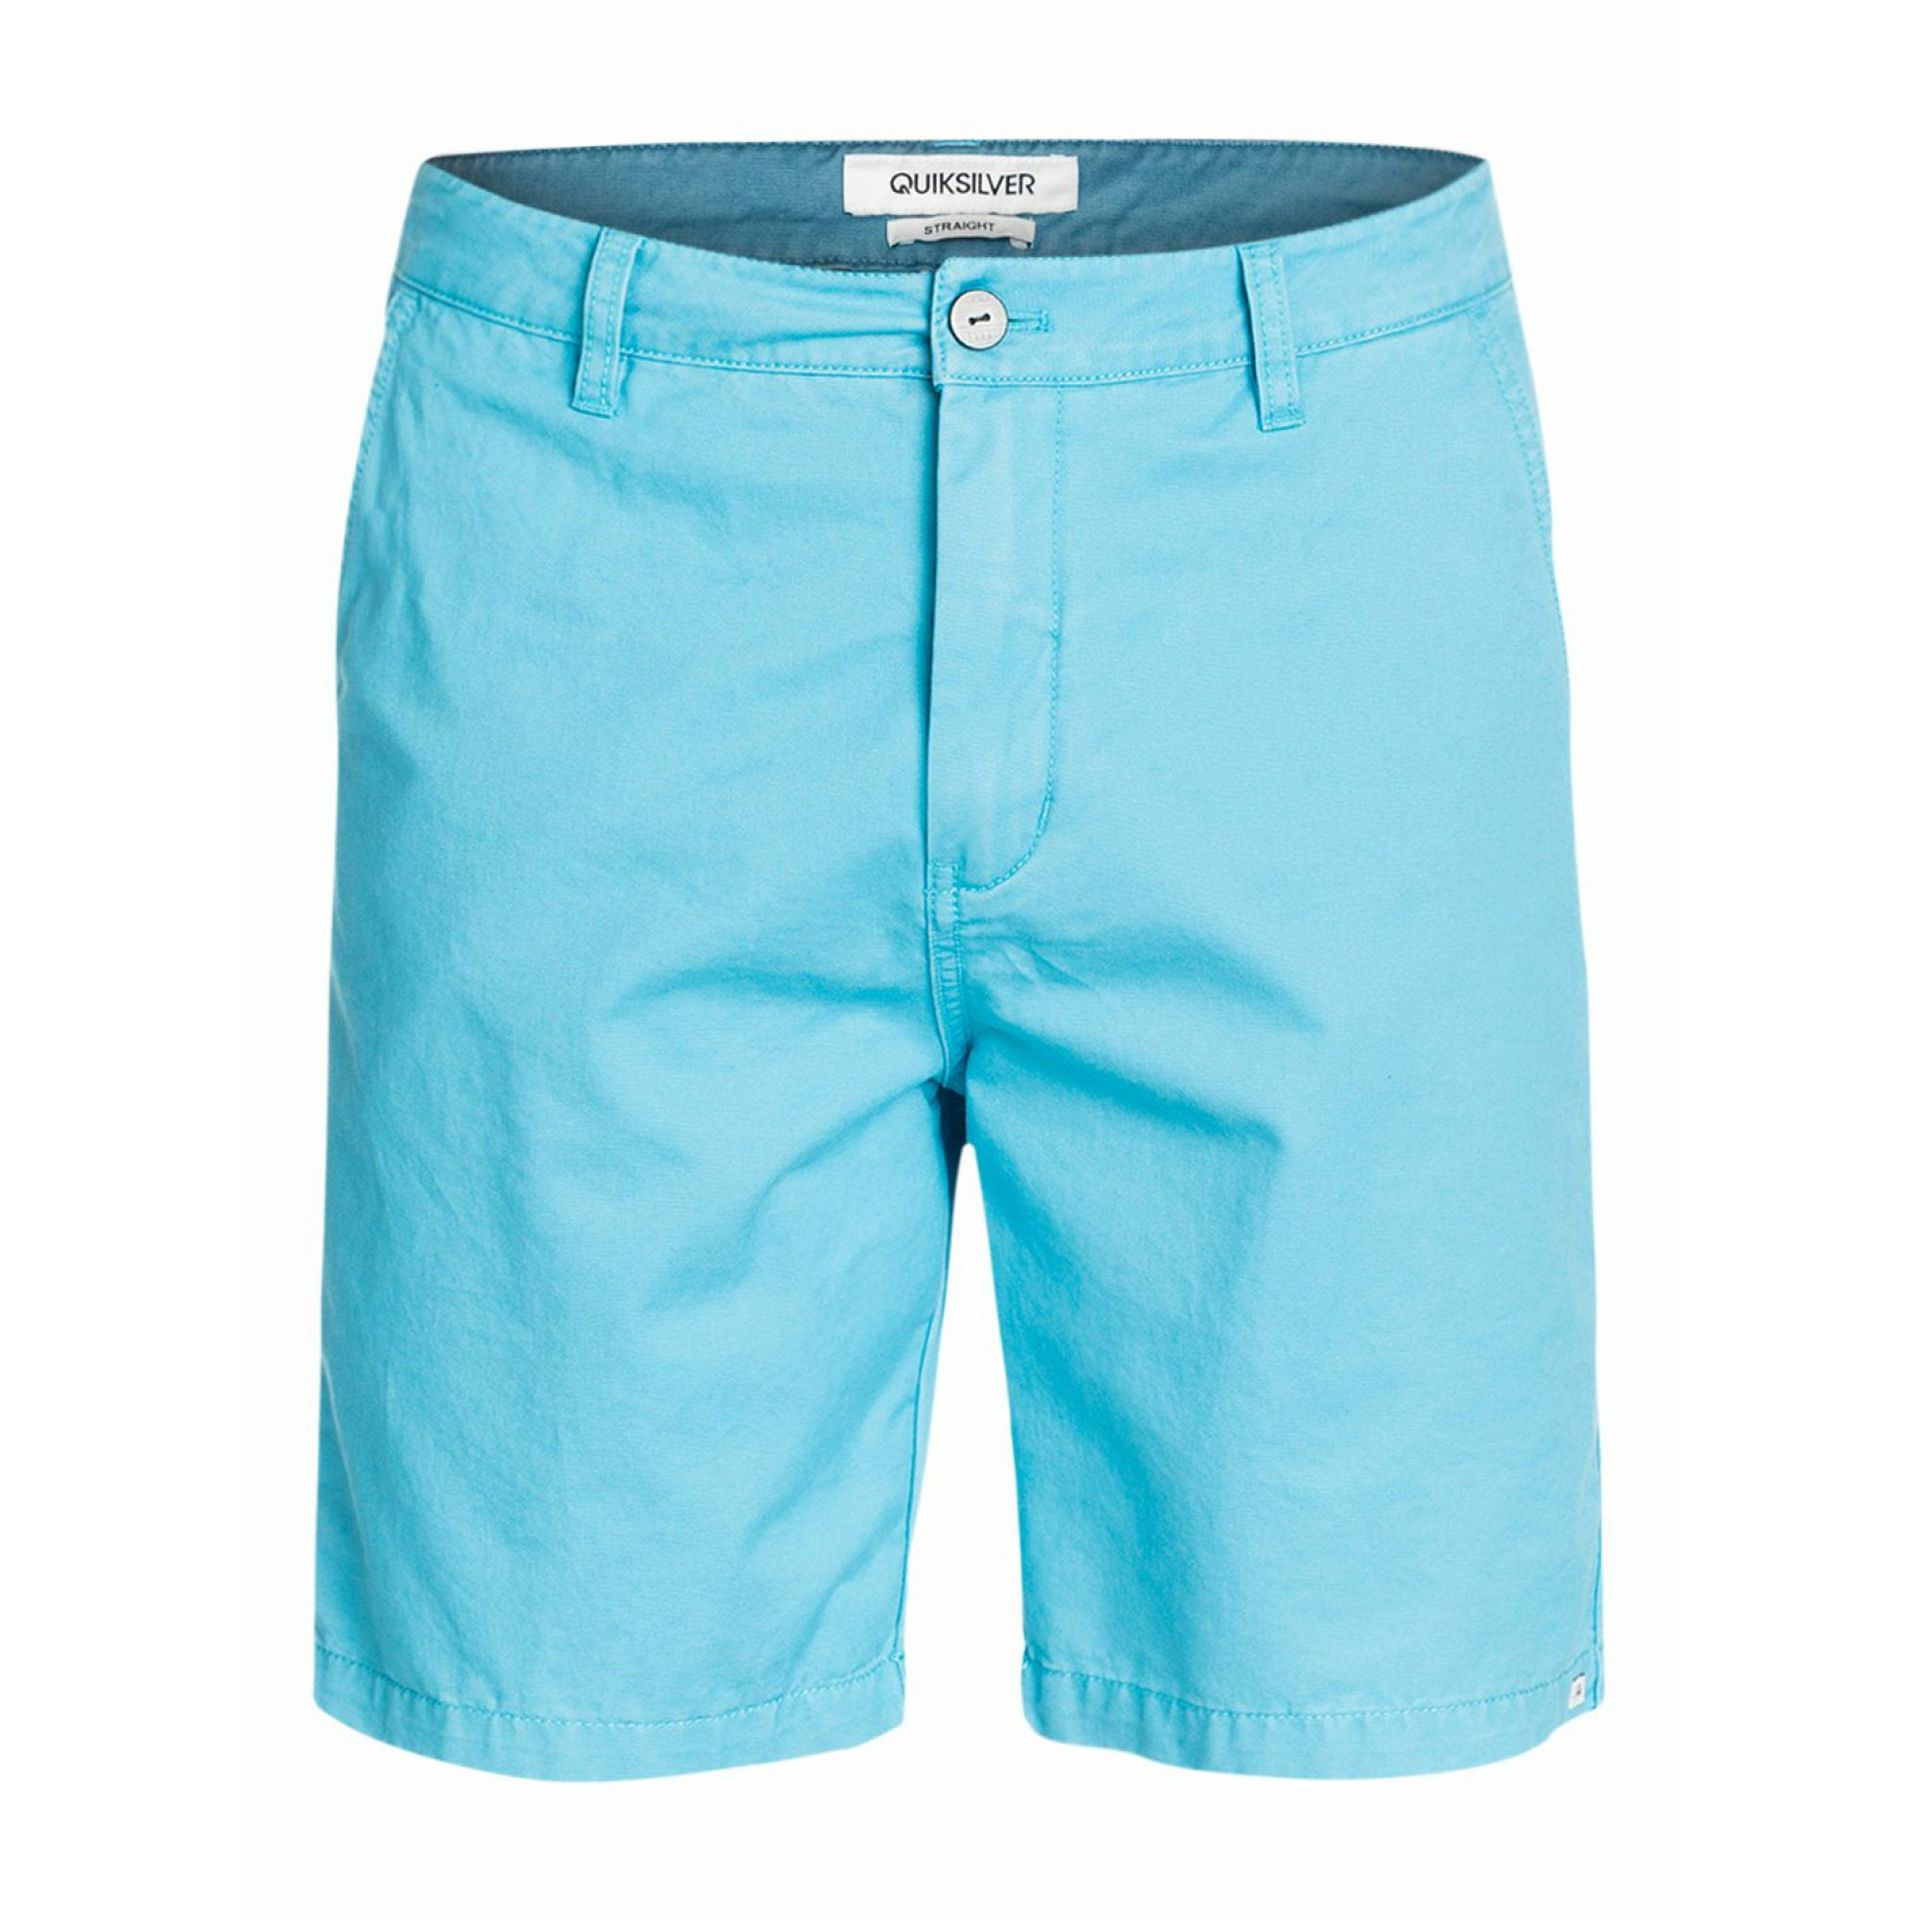 SPODENKI  QUIKSILVER EVERYDAY CHINO SHORT